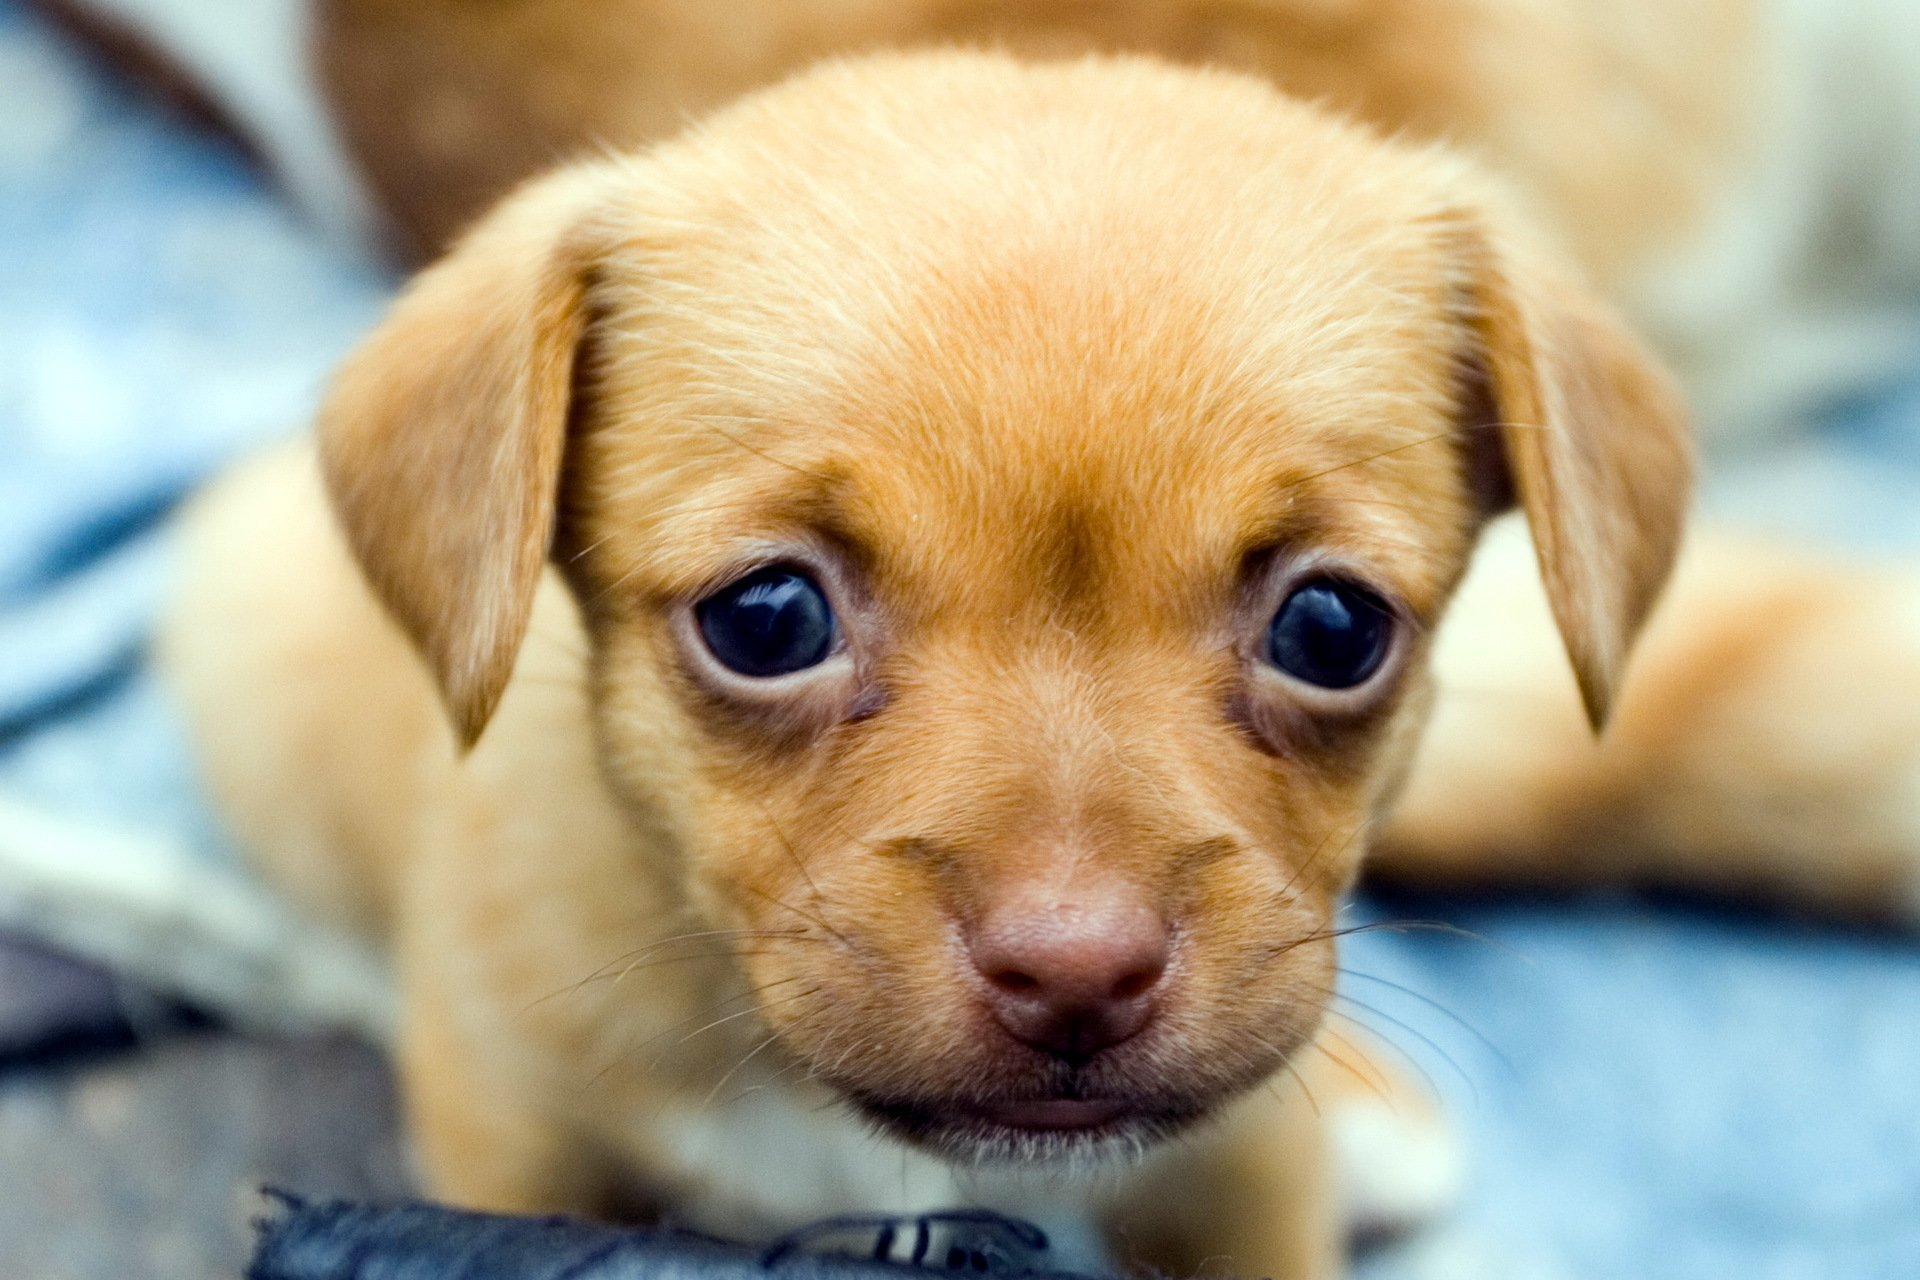 Cute puppies make everything better! So if youre having a bad day this list is your cure These are the 25 cutest puppies ever!